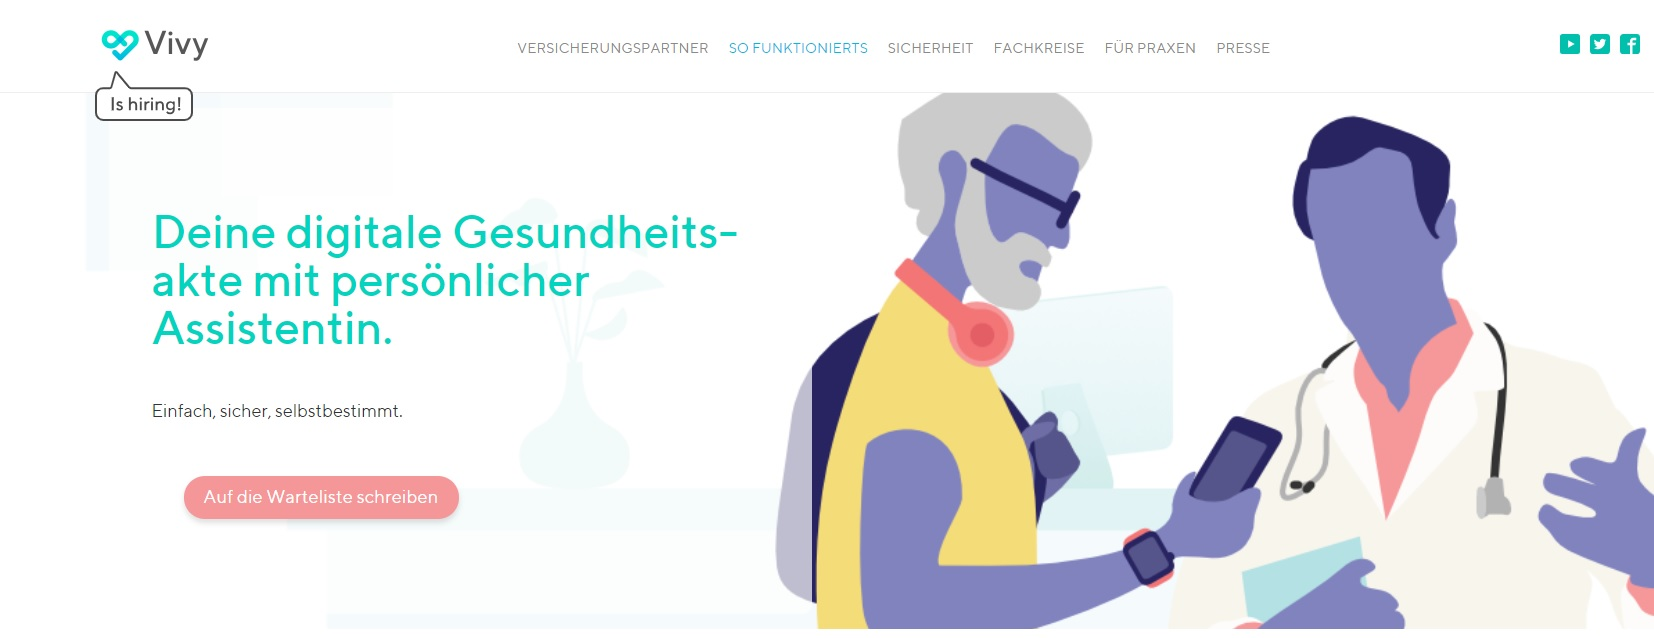 Screenshot der Vivy-Internetseite